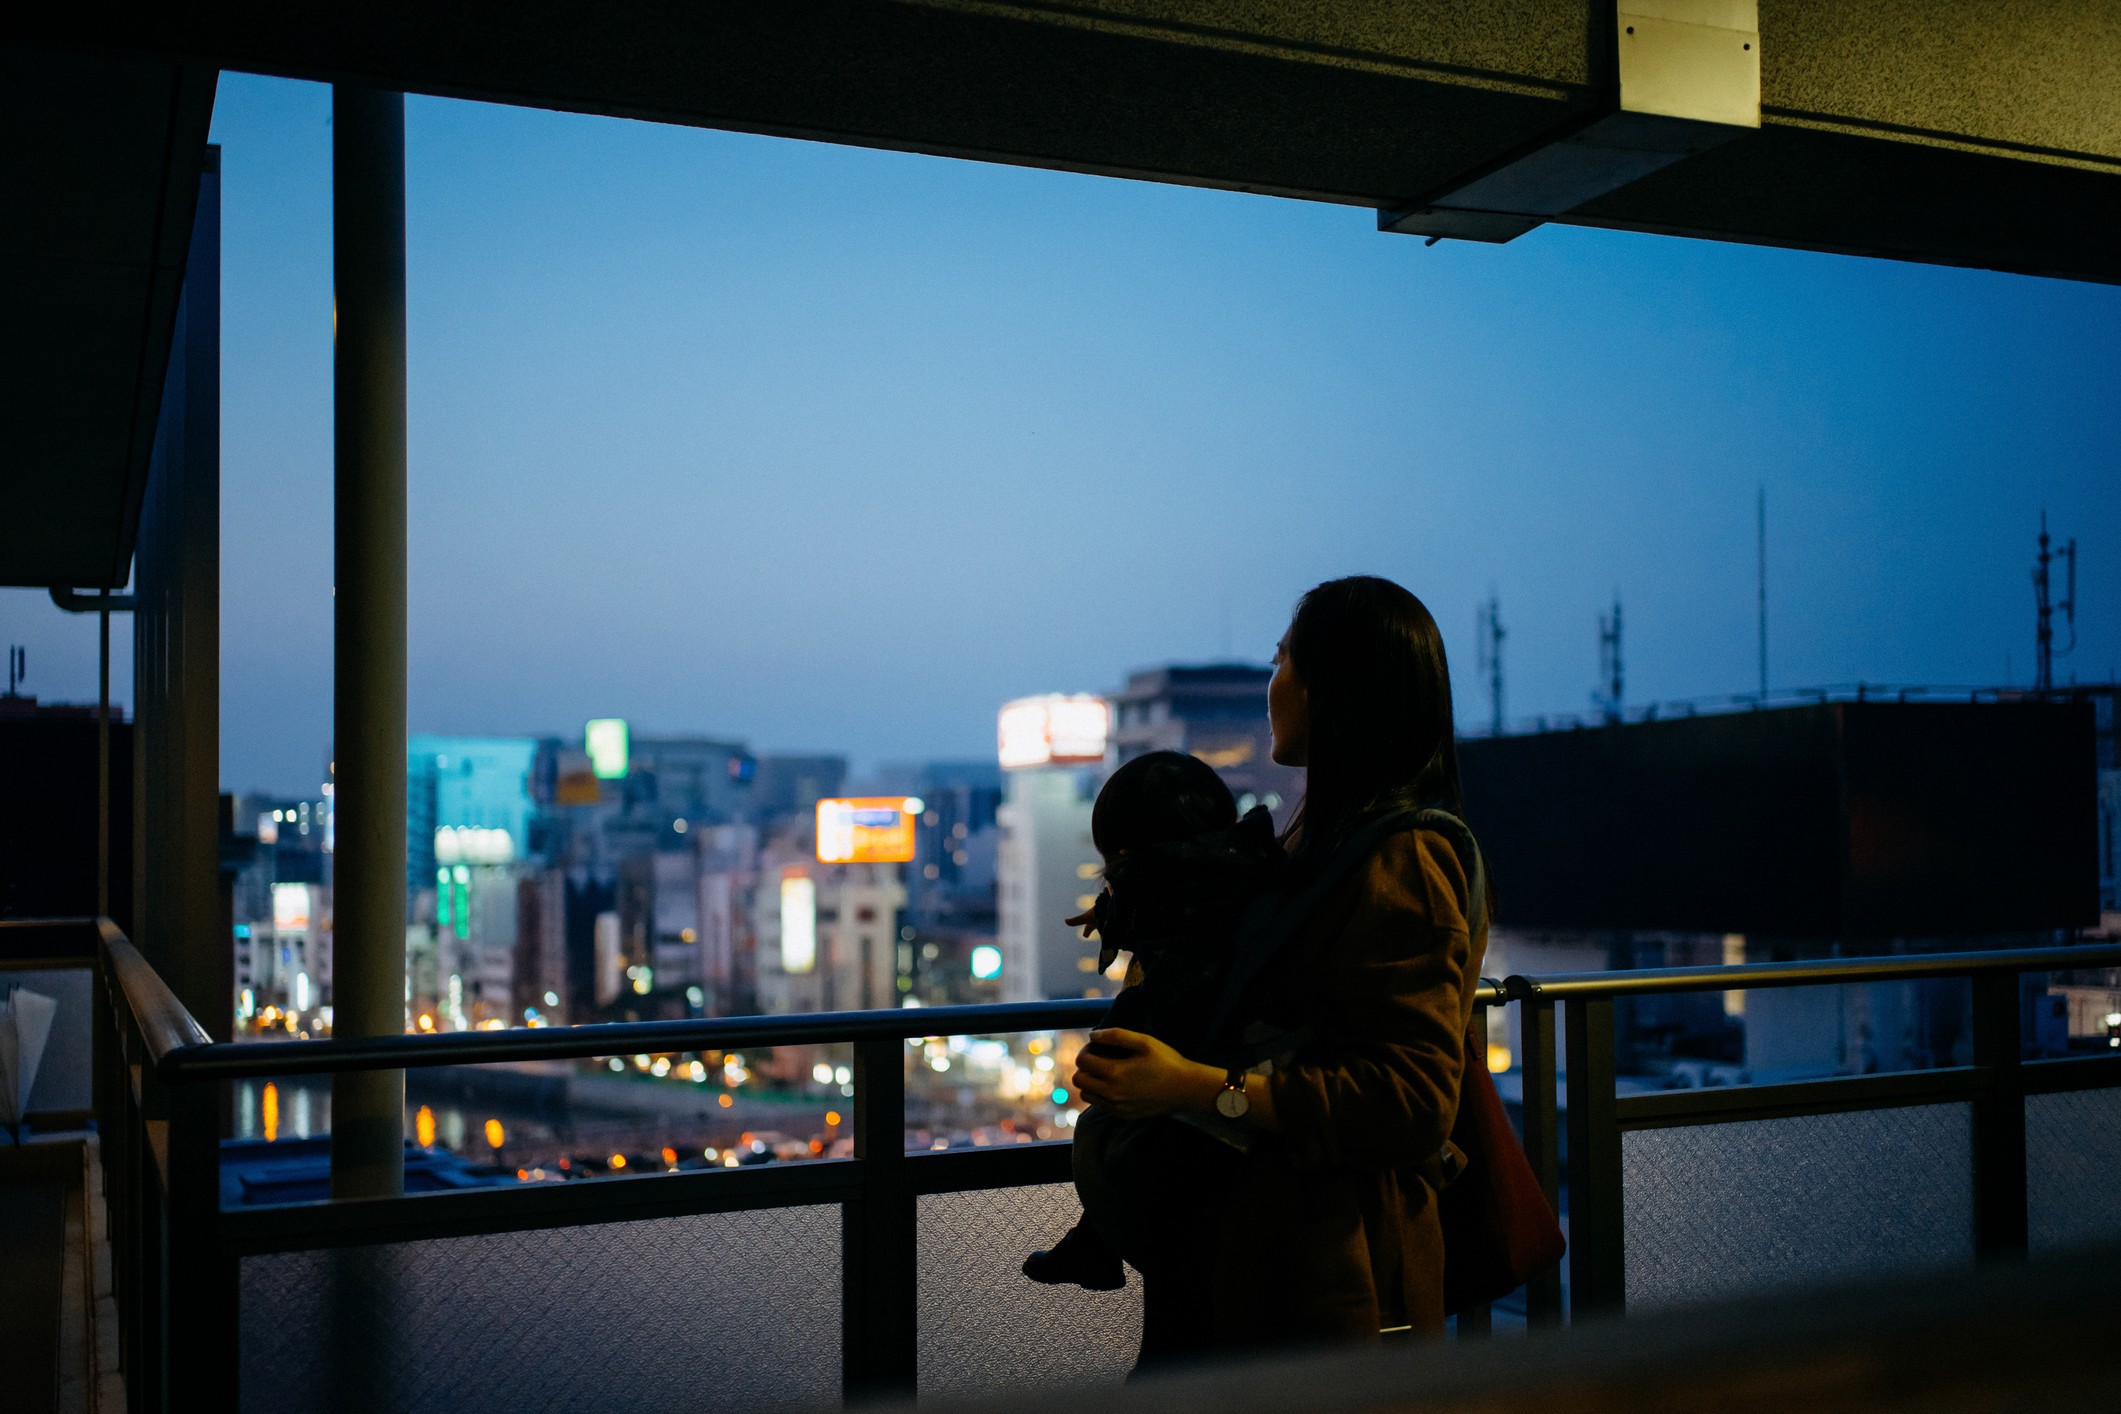 Mother with child looking out window at twilight.